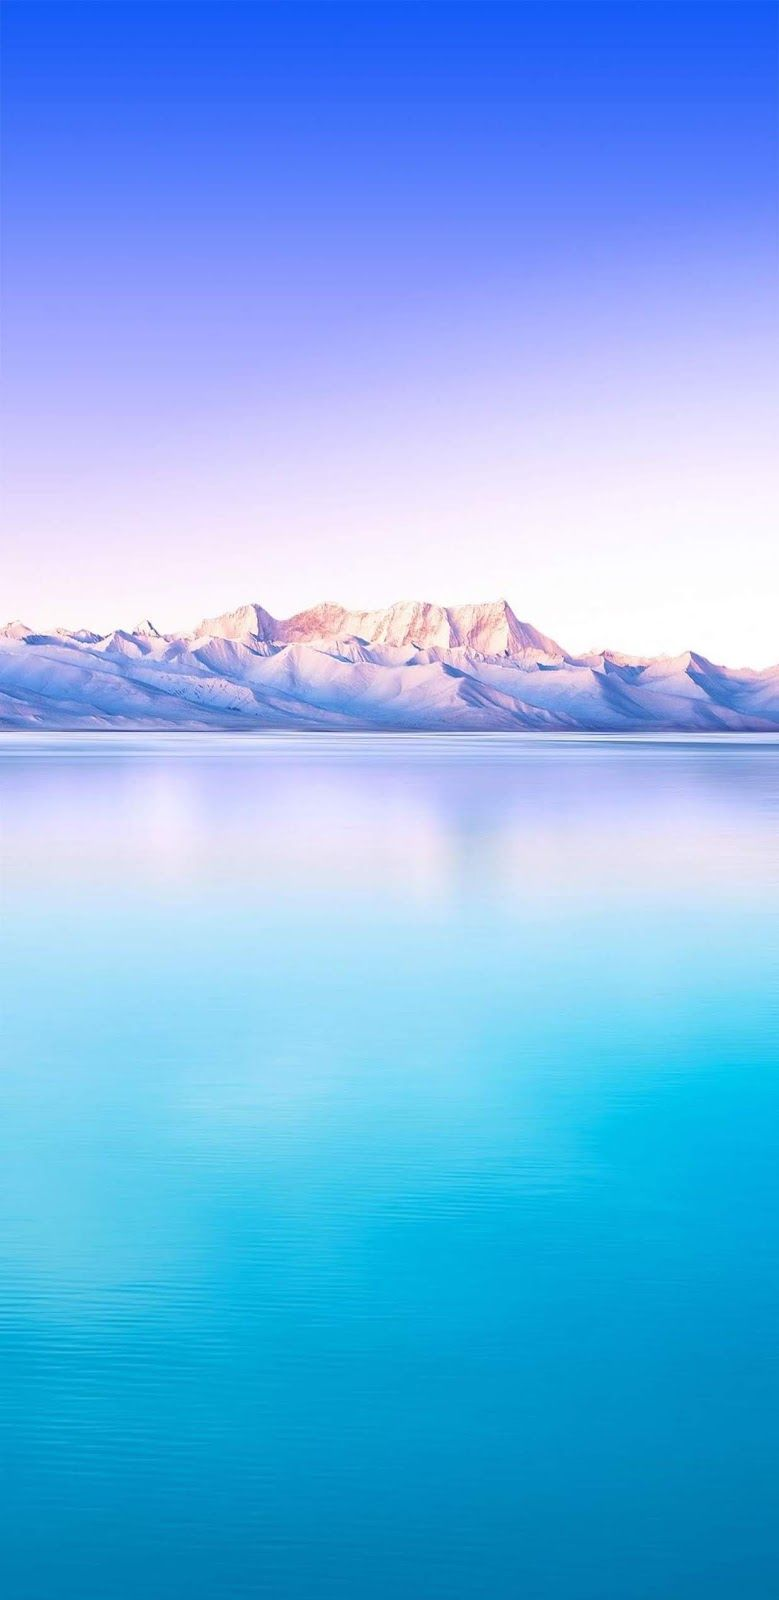 Blue Scenery Wallpaper Iphone Android Background Nature Wallpaper Beautiful Nature Wallpaper Nature Photography